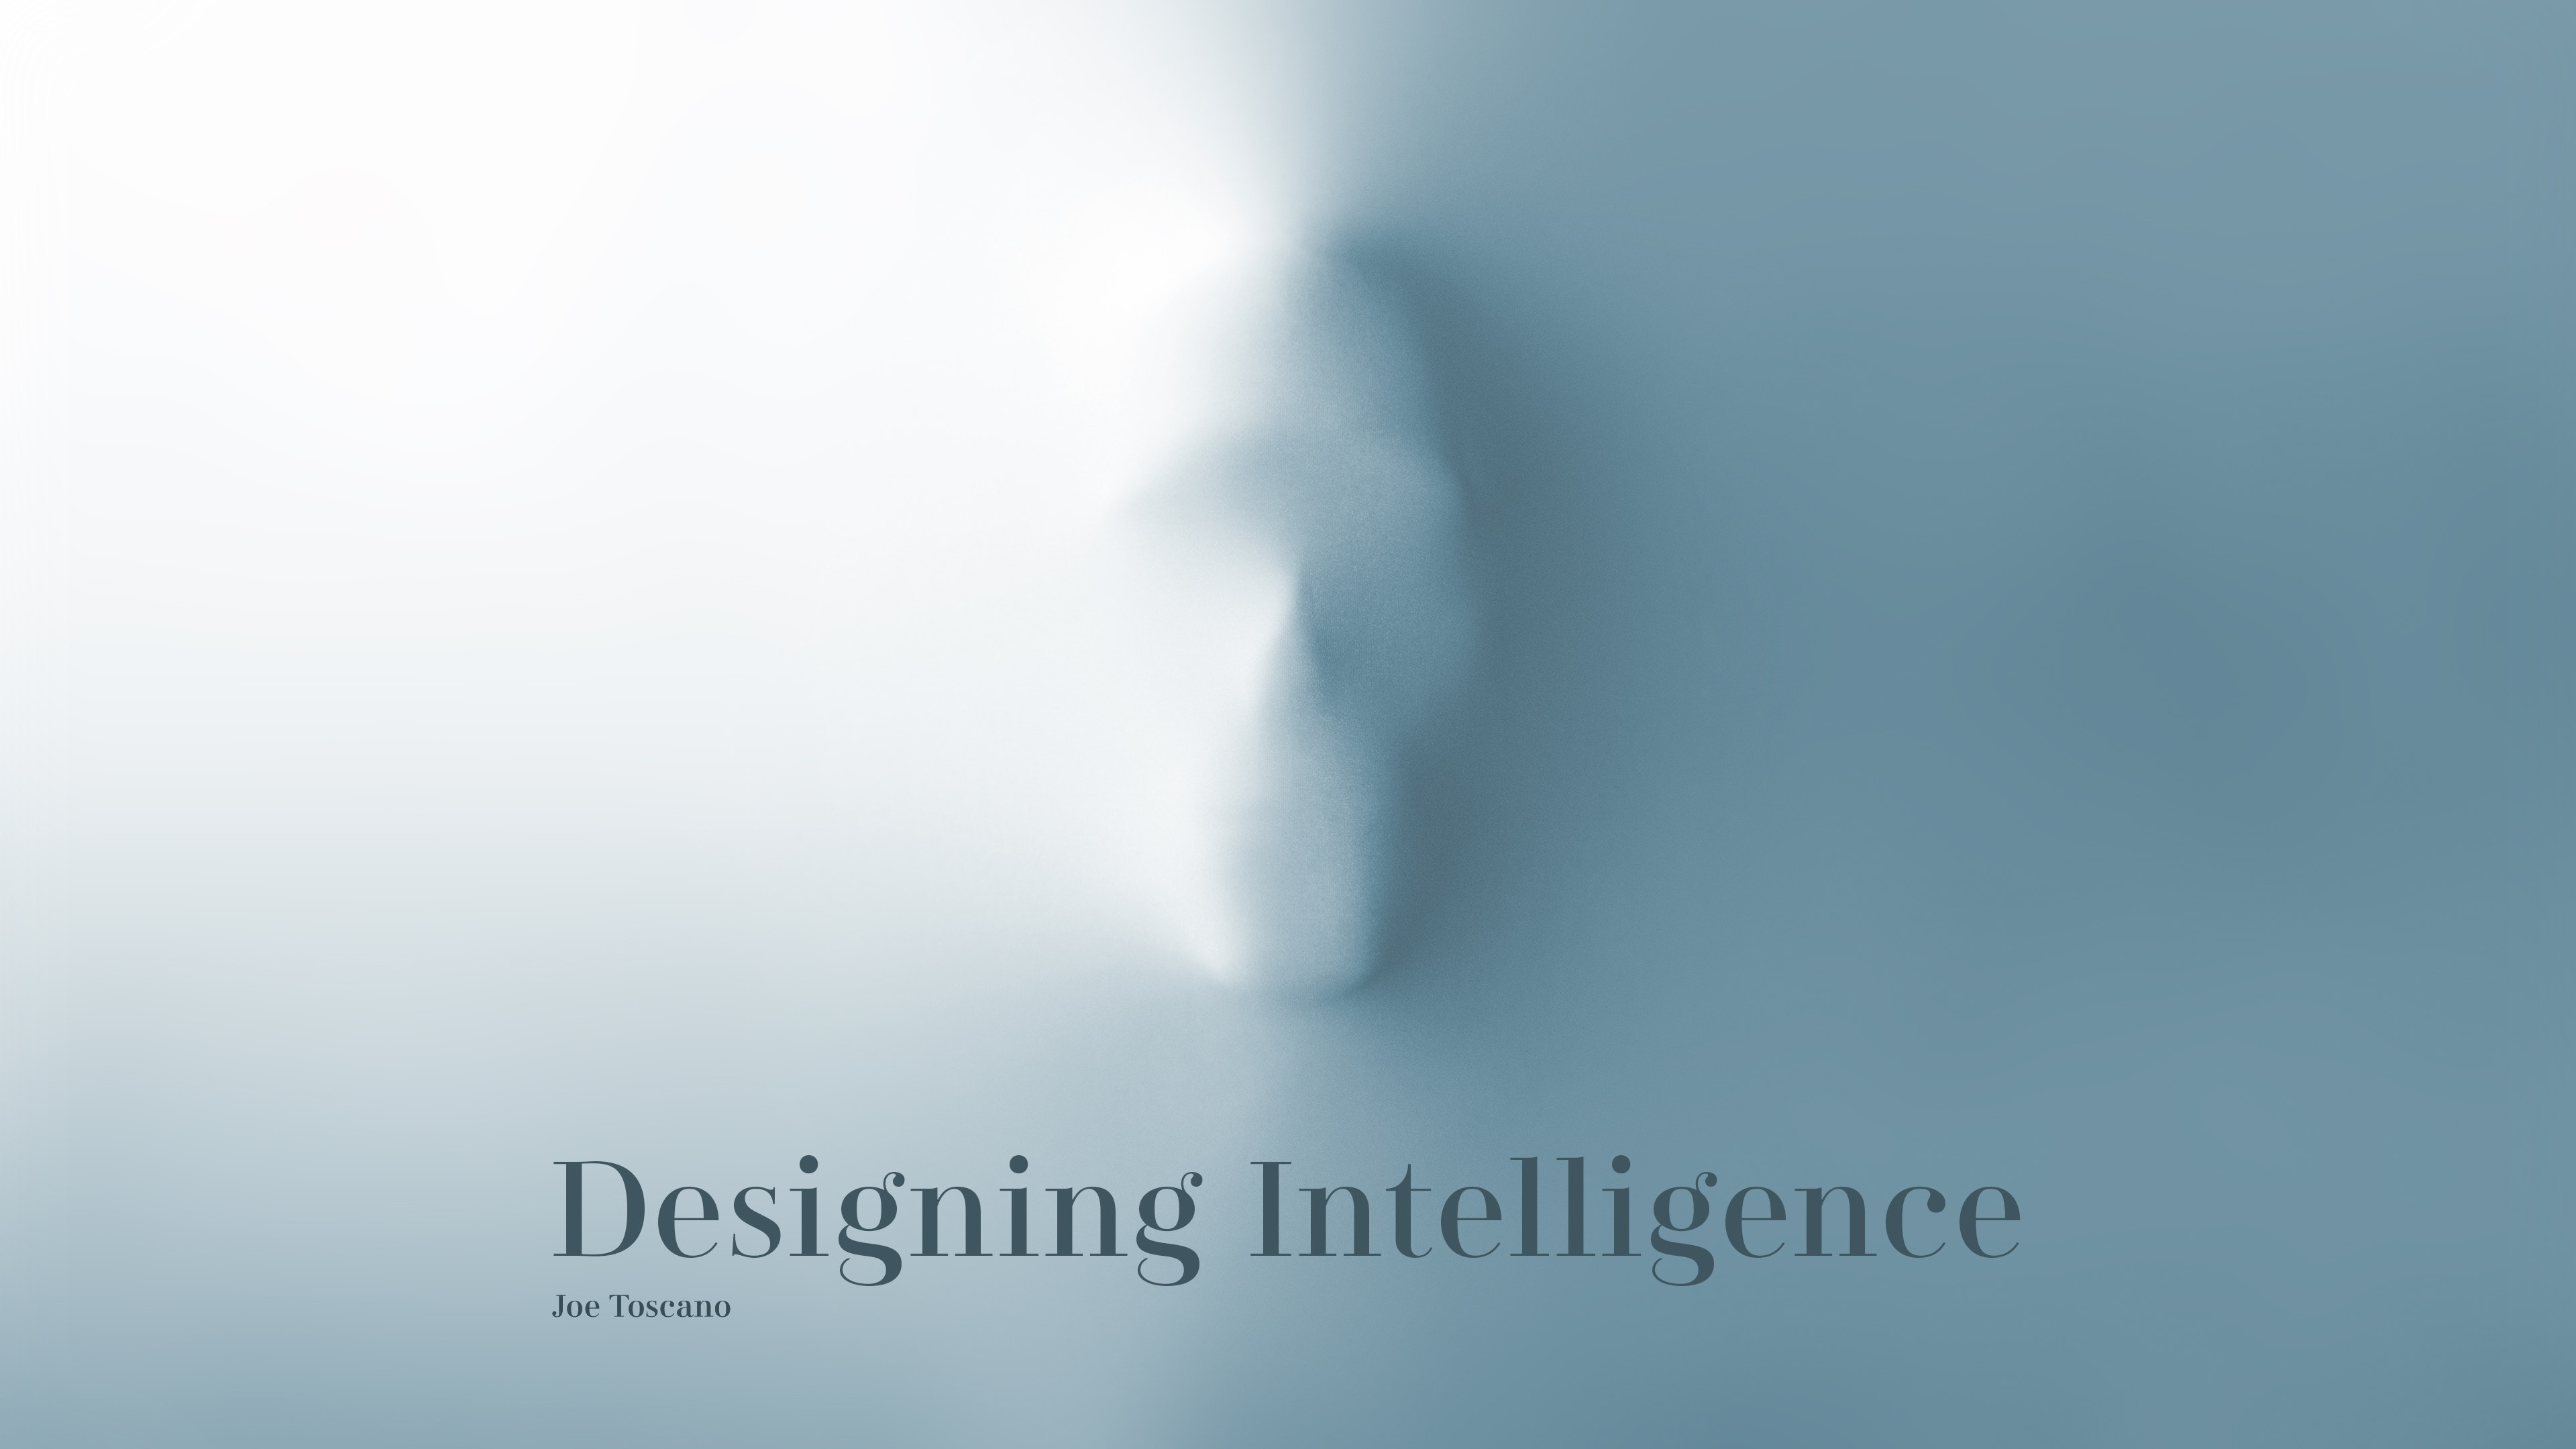 Designing Intelligence